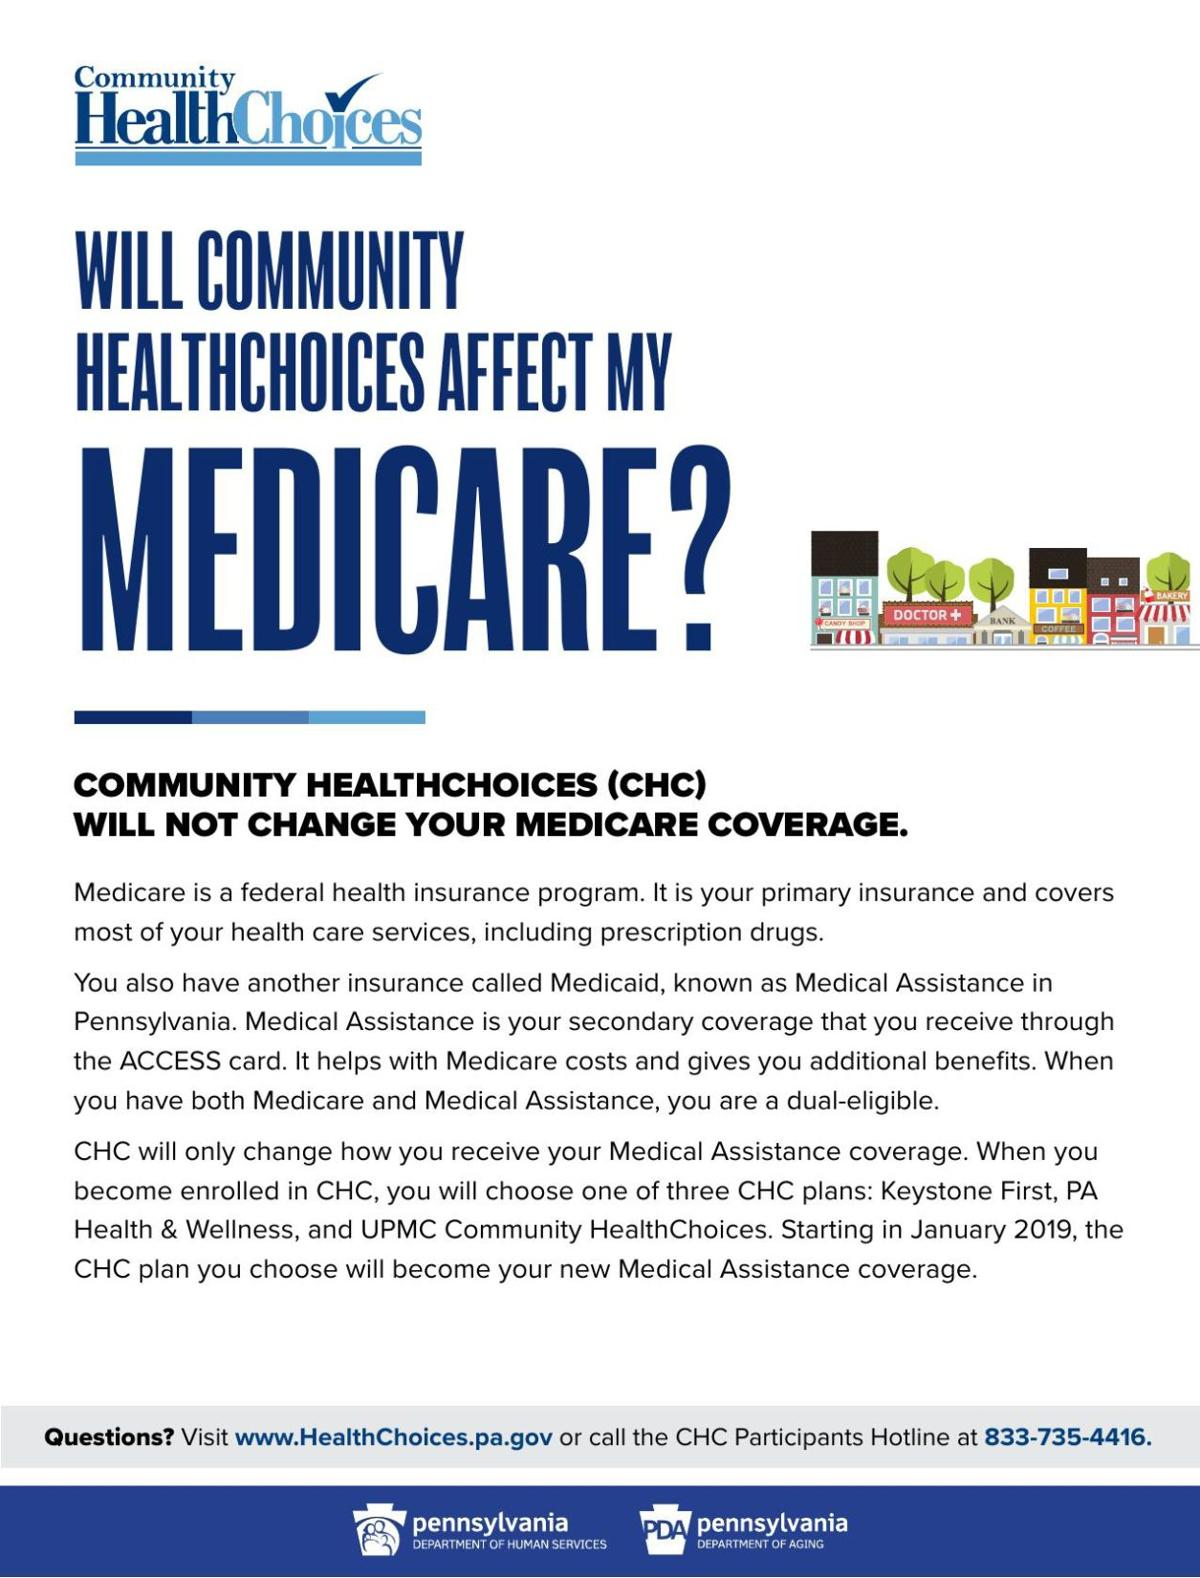 WILL COMMUNITY HEALTHCHOICES AFFECT MY MEDICARE?